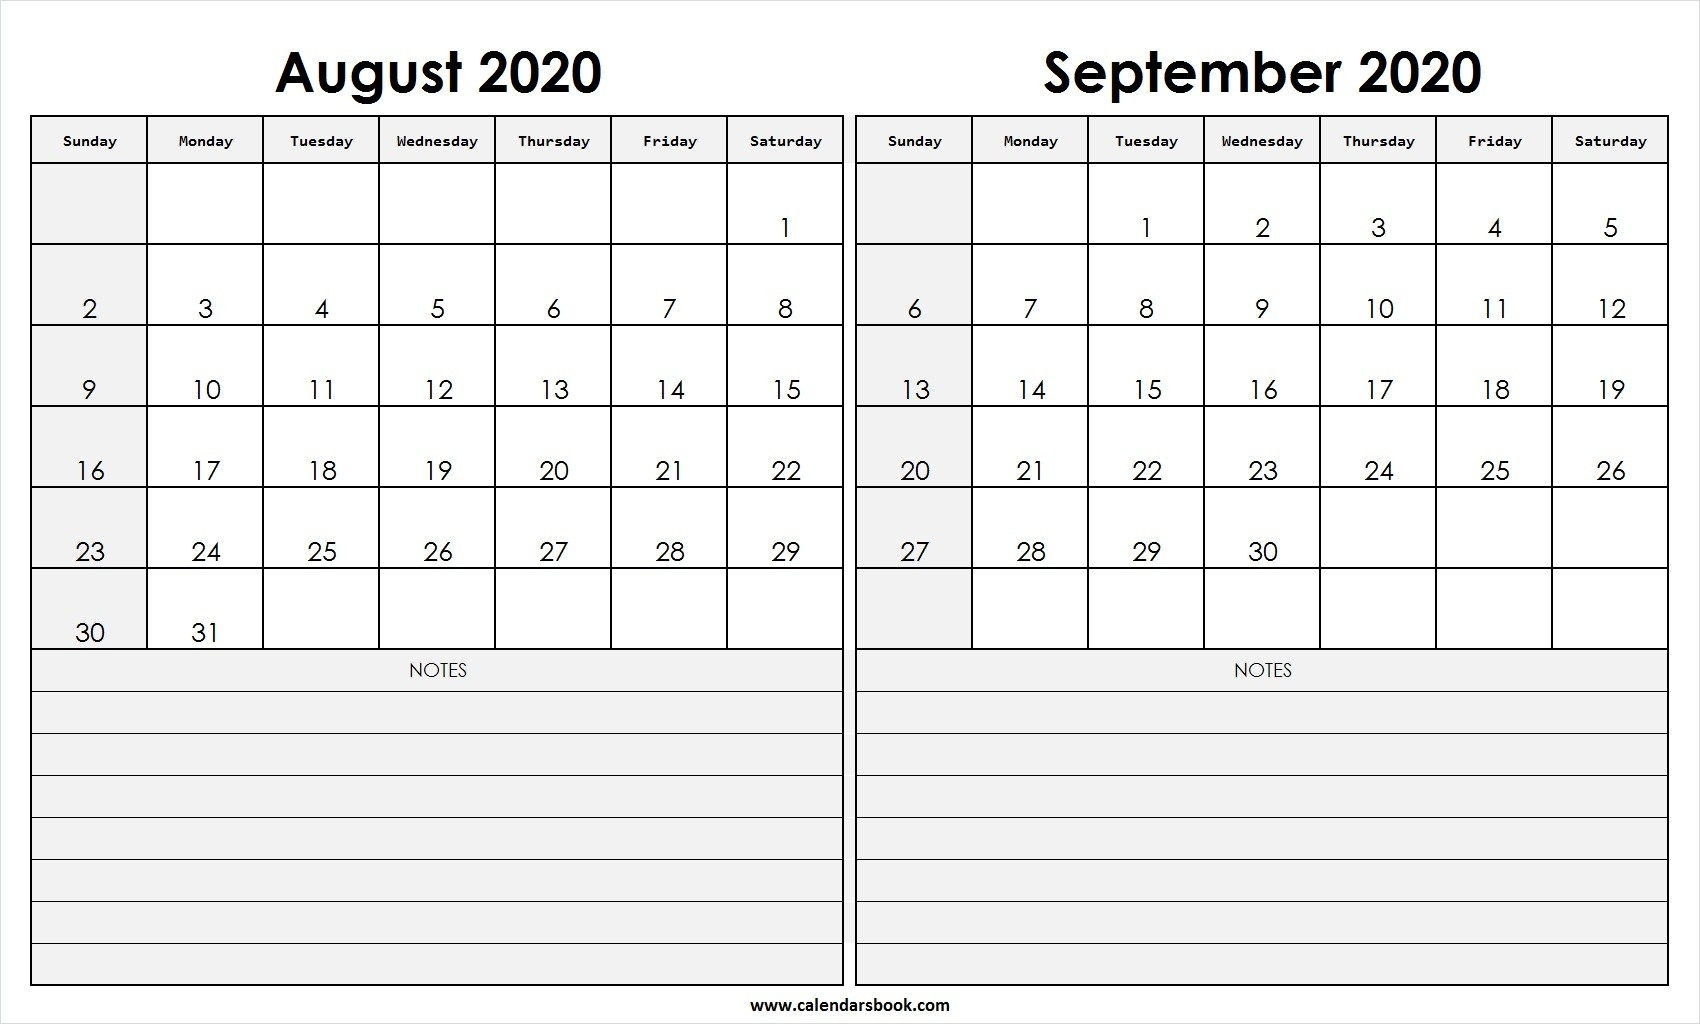 2 Months Calendar August September 2020 | Example Calendar intended for Calendar August And September 2020